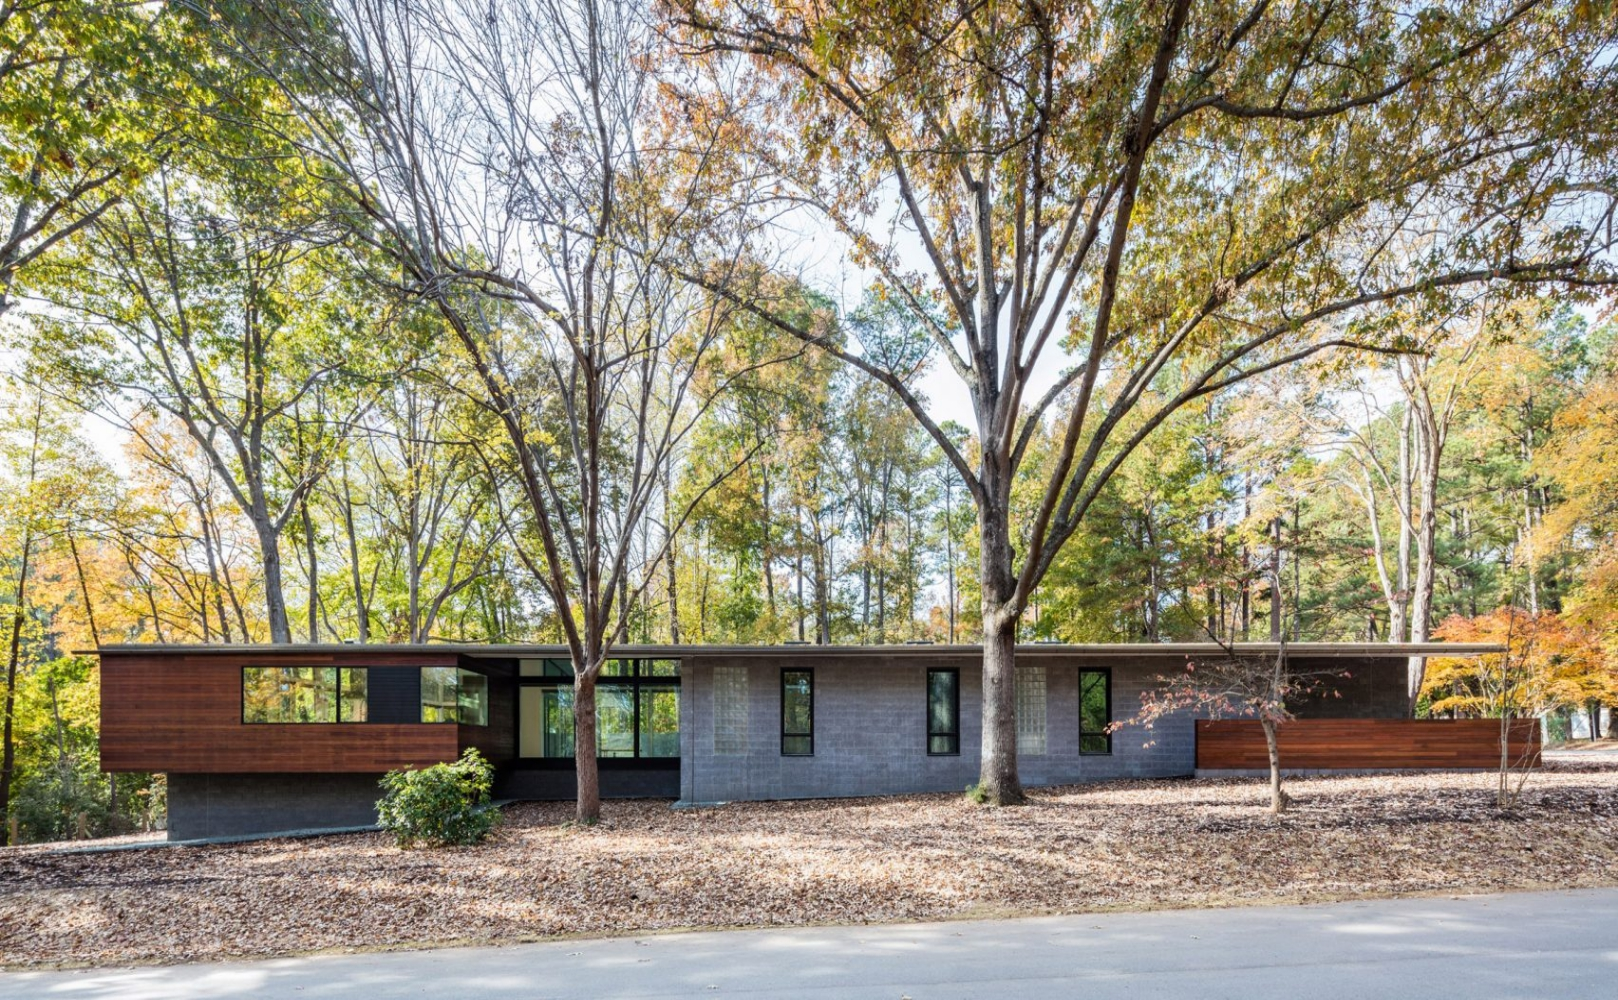 trull-residence-in-situ-studio-architecture-north-carolina-usa_dezeen_2364_hero-1704x959